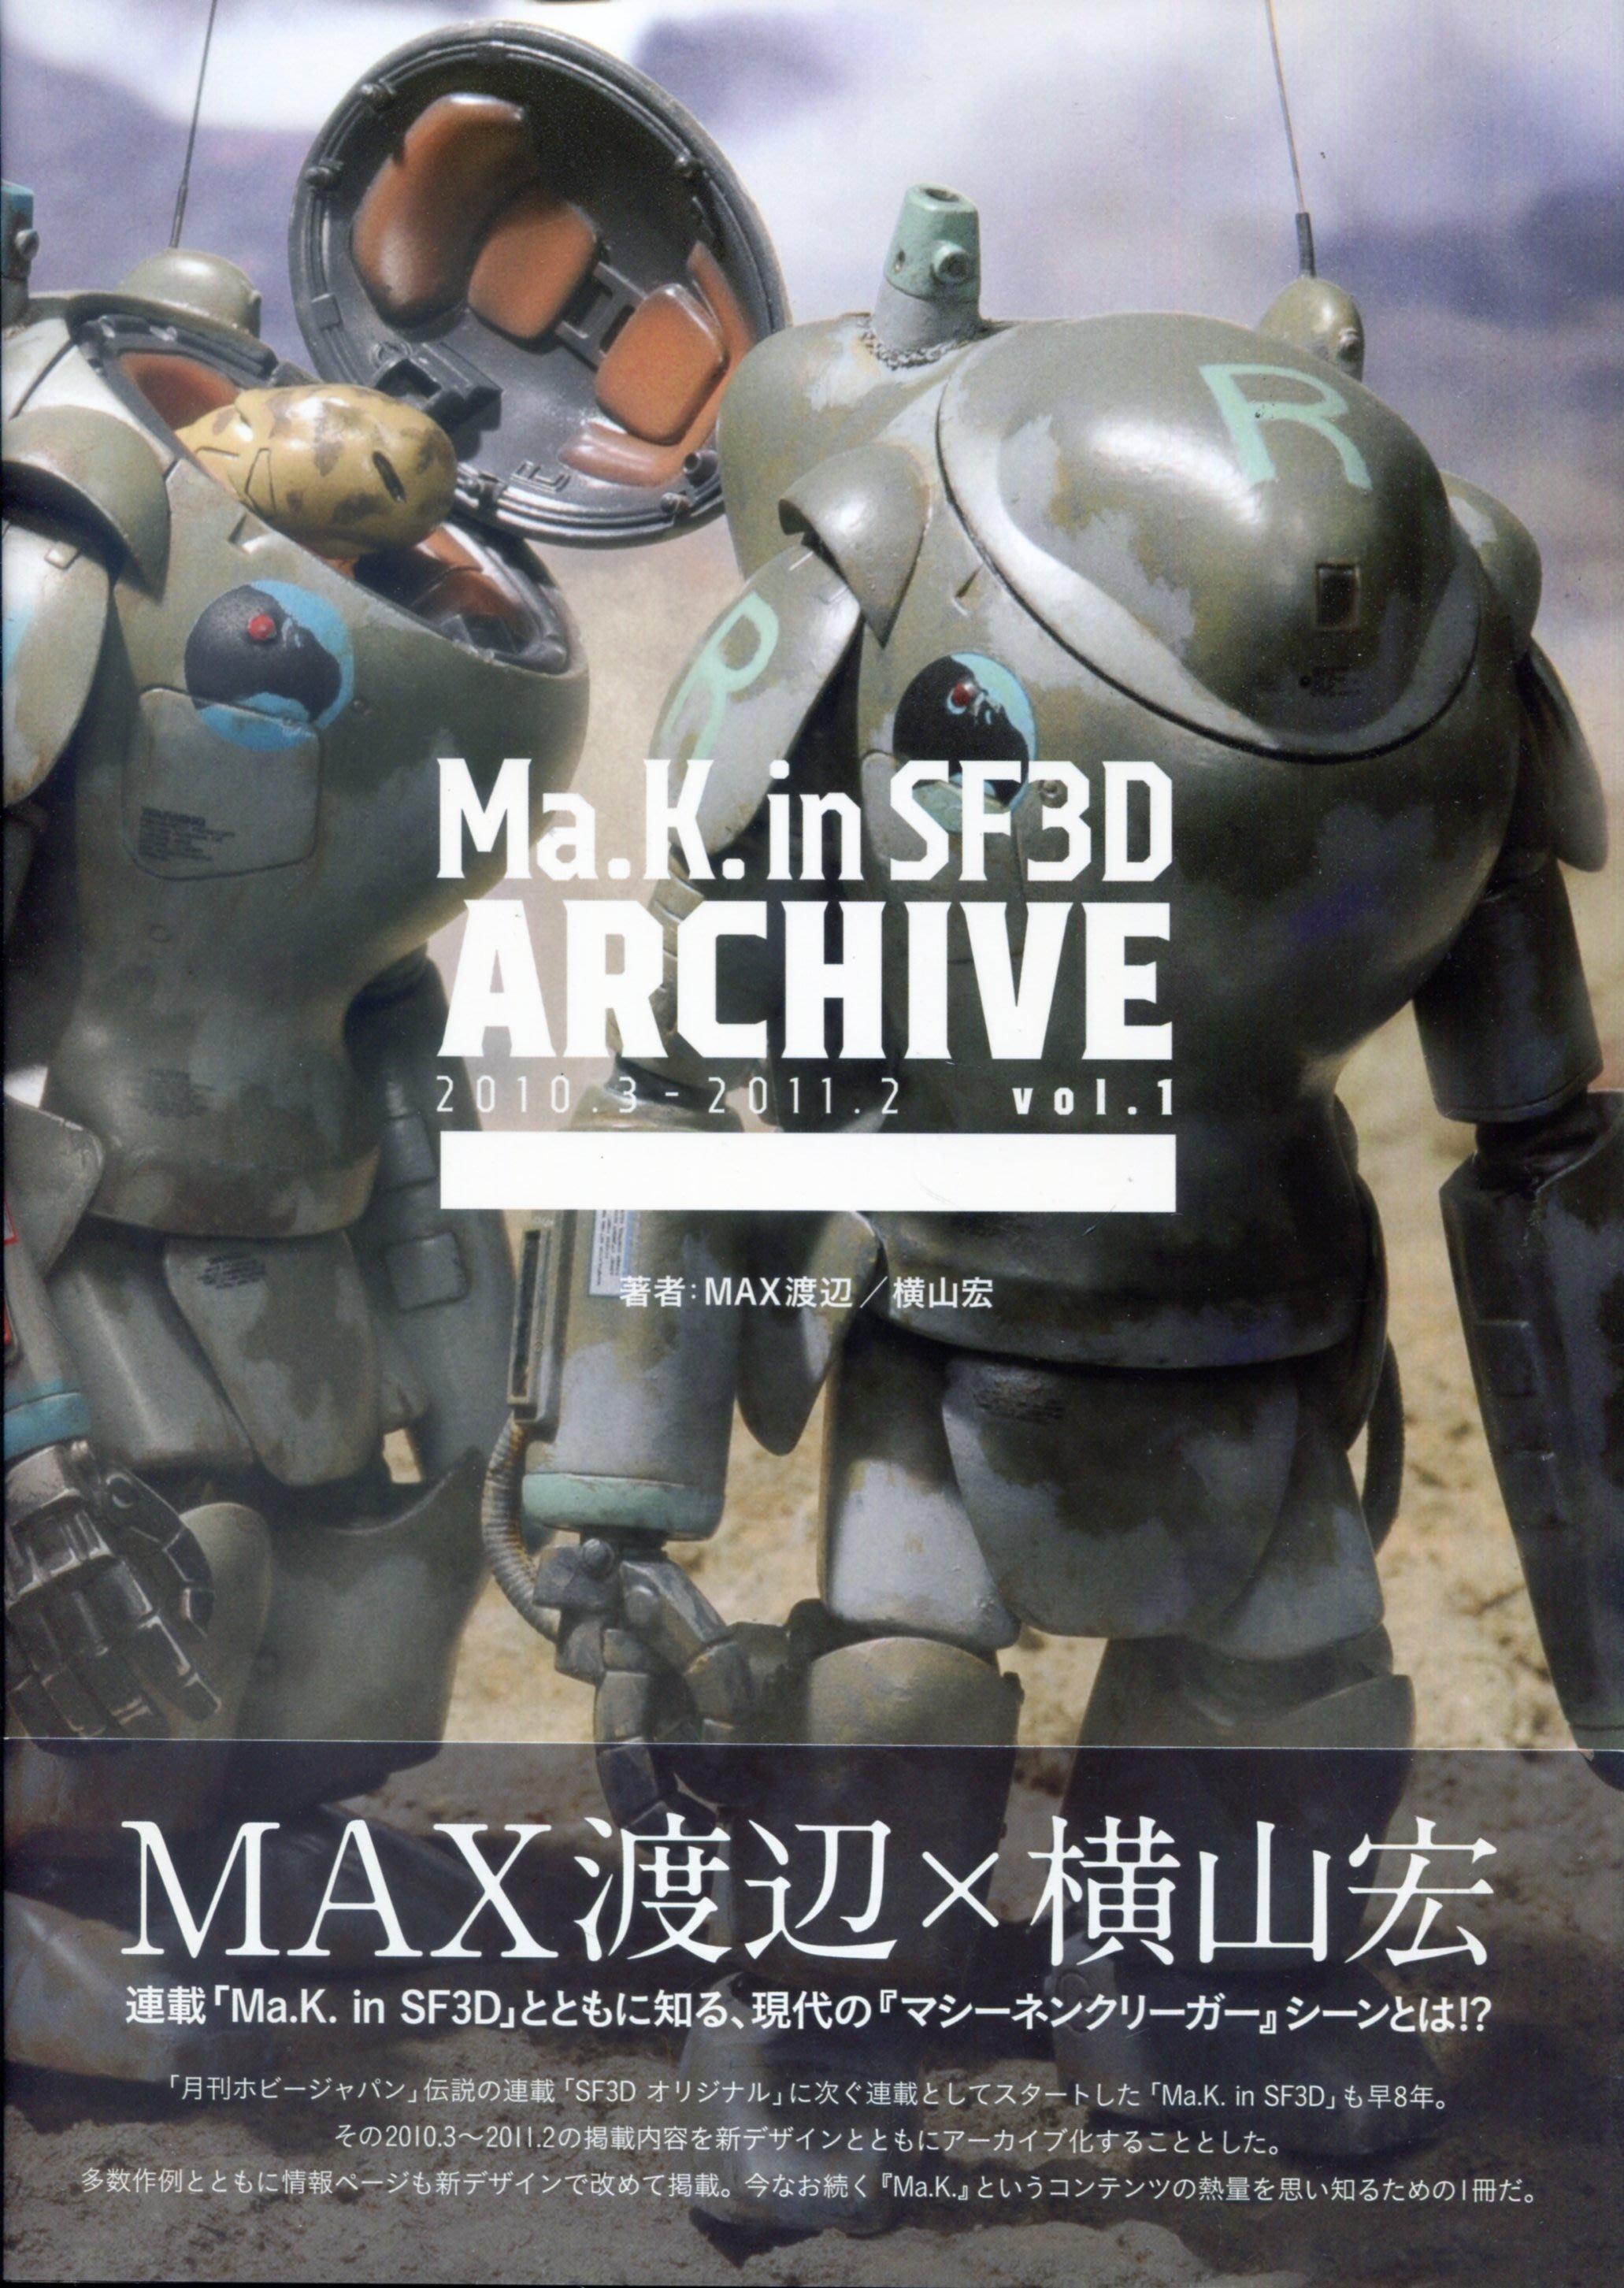 橫山宏《Ma.K. in SF3D Archive 2010.3-2011.2 Vol.1》